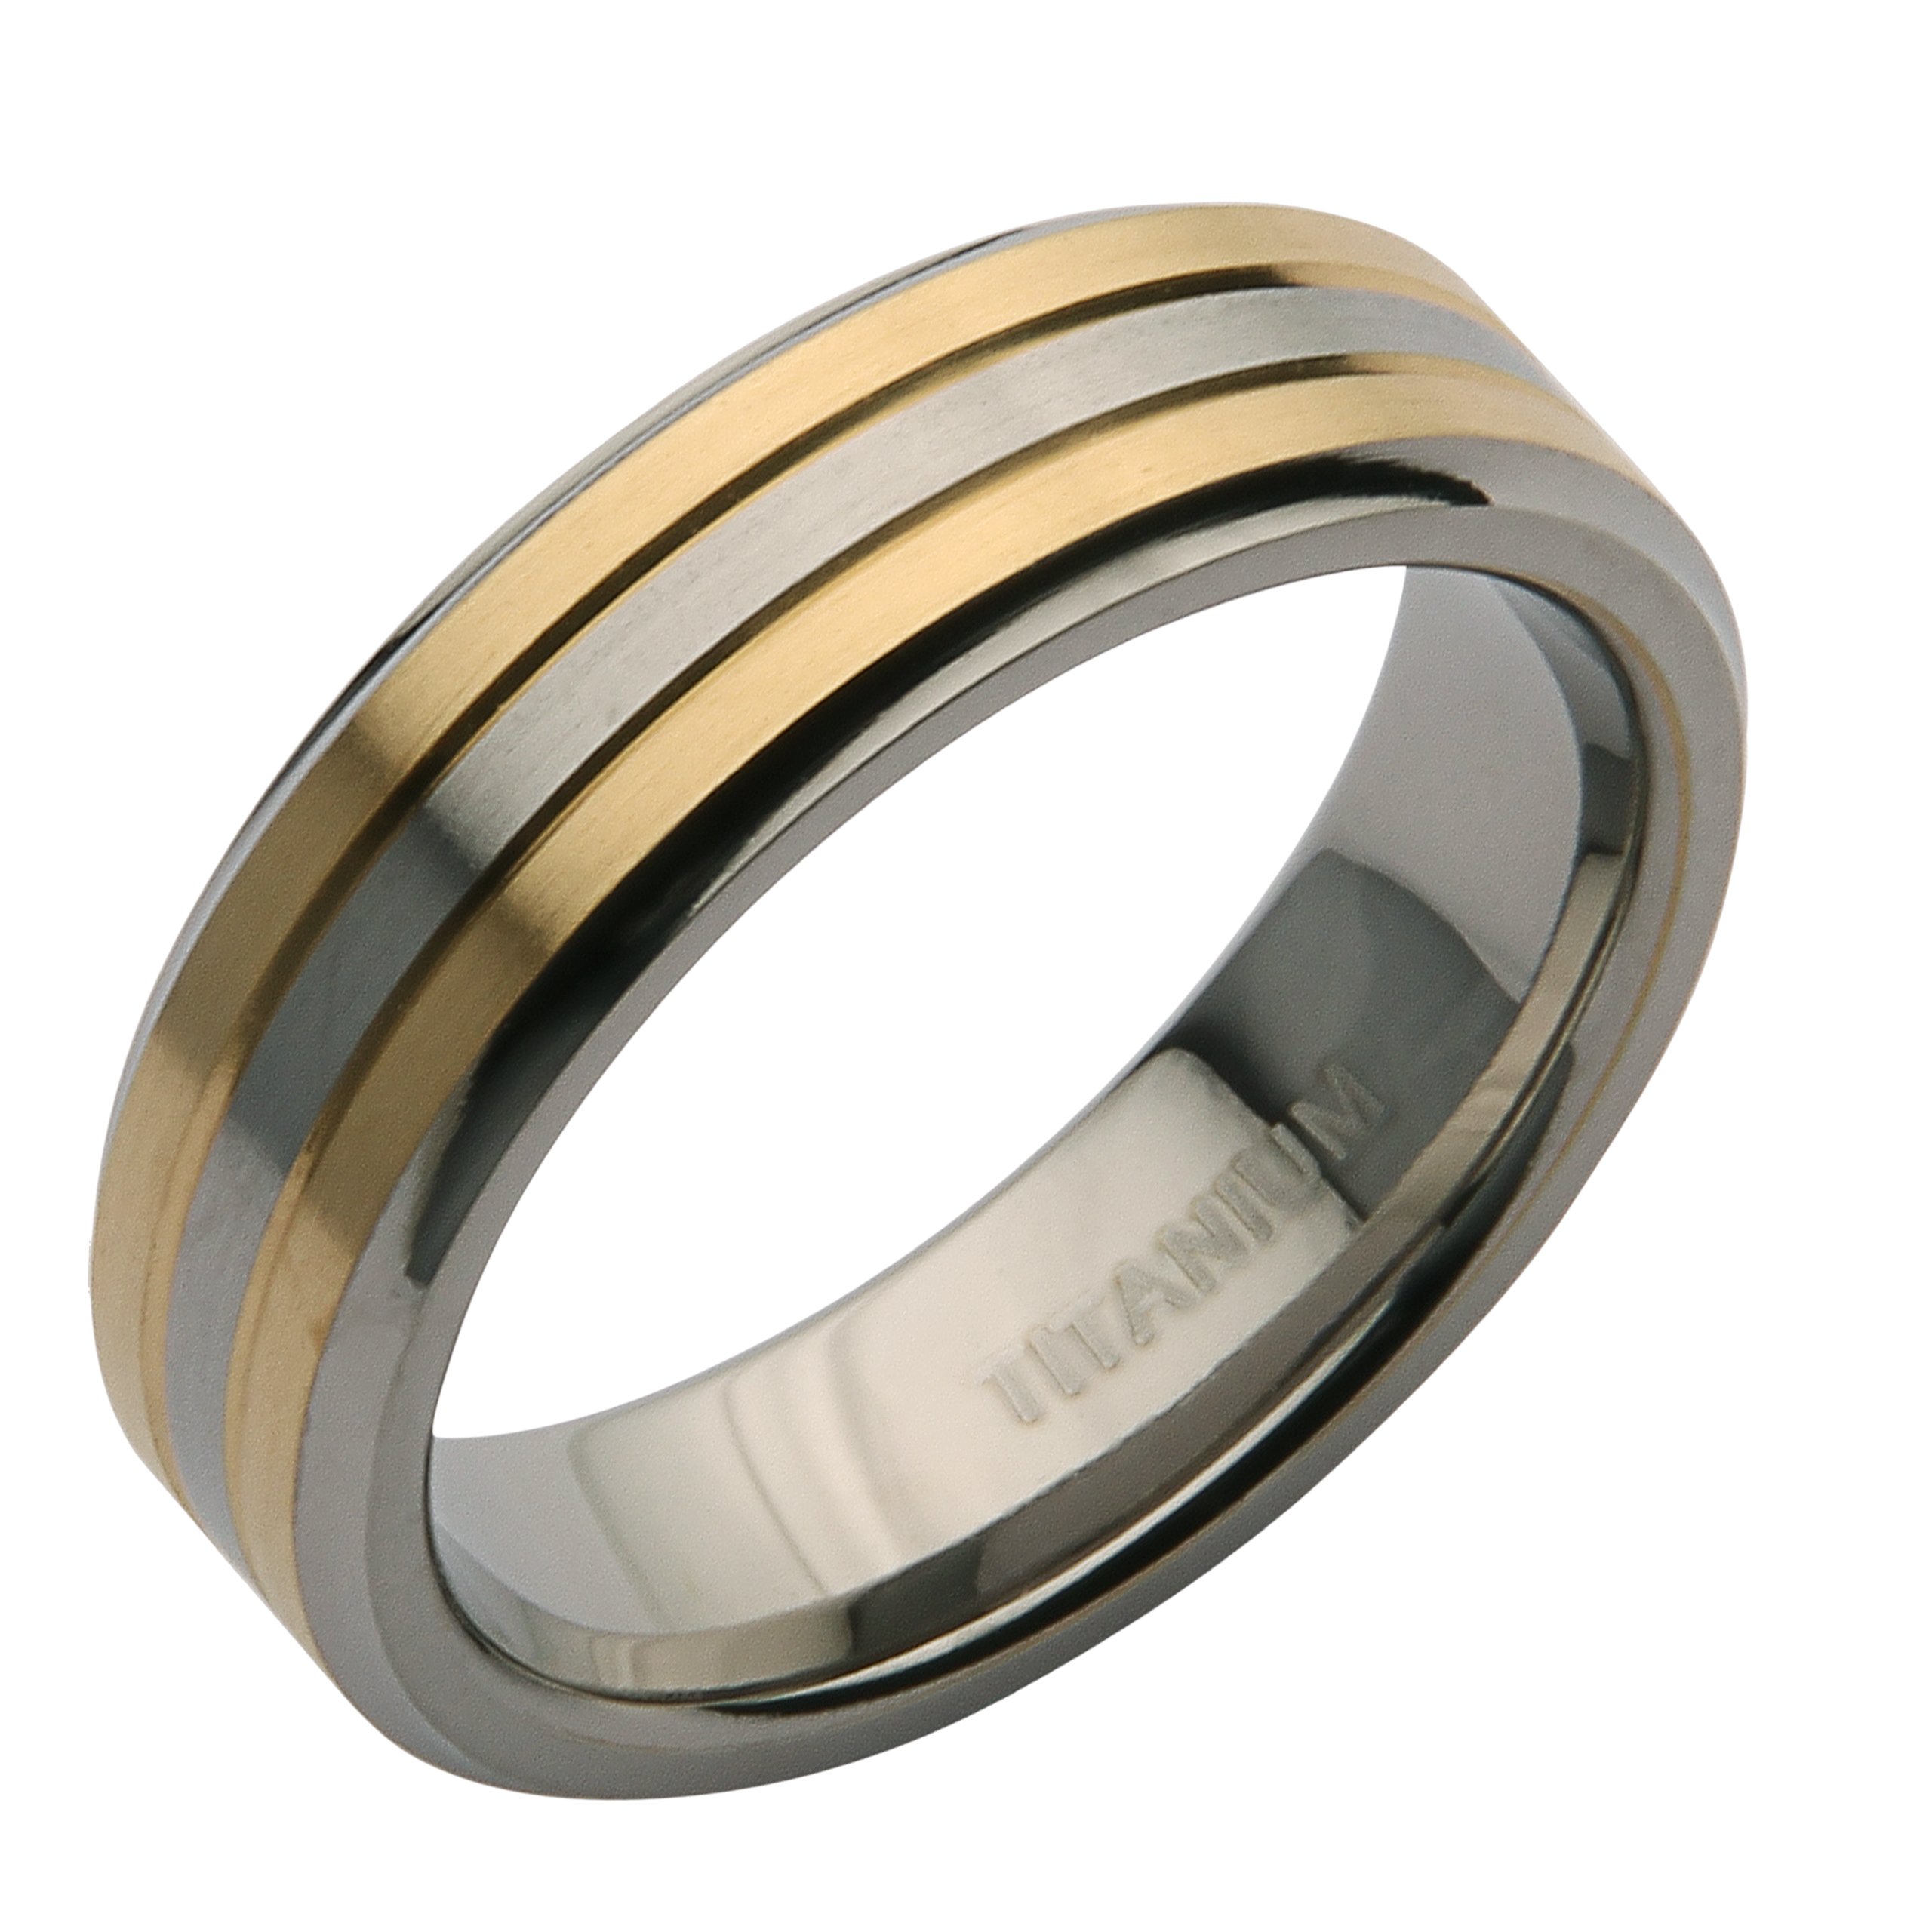 6mm titanium two tone wedding ring band titanium rings at elma